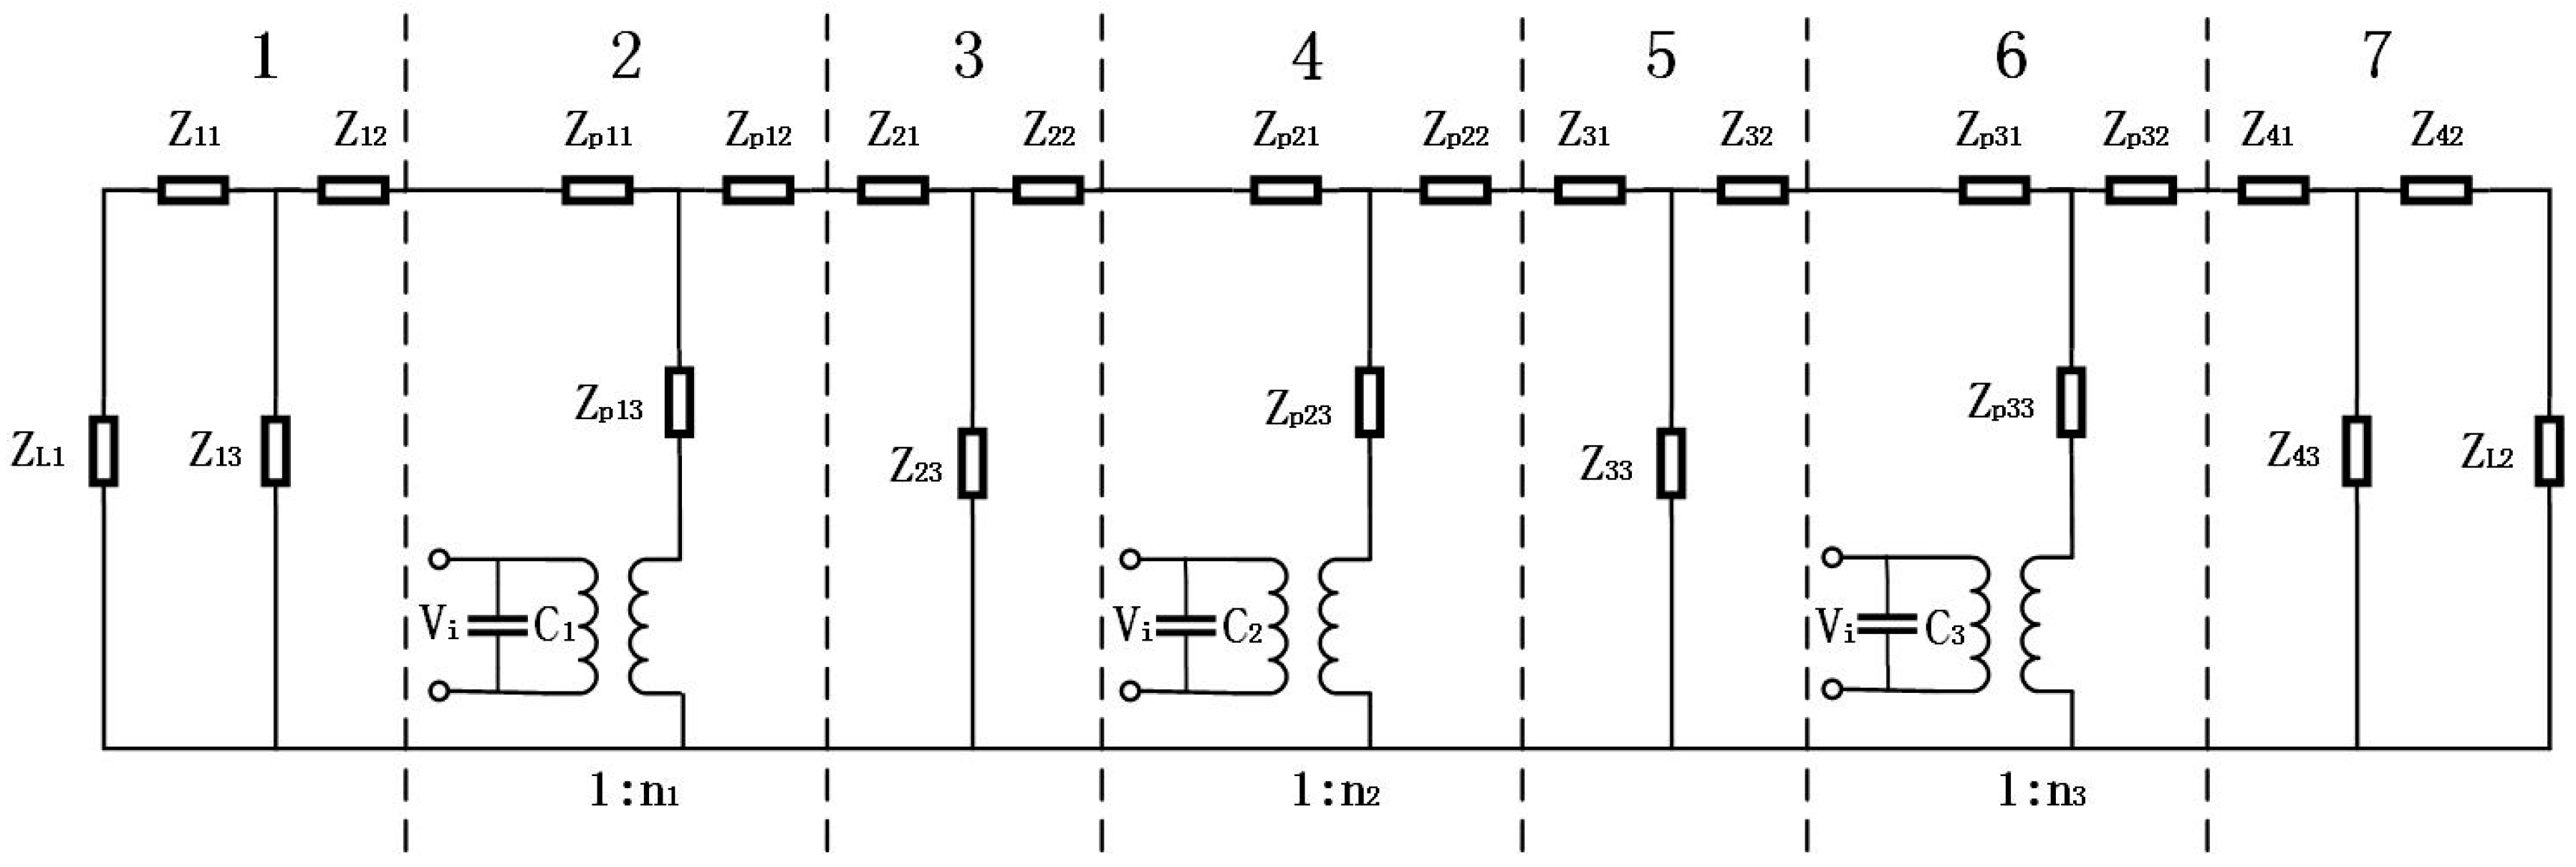 Sensors | Free Full-Text | Analysis of a Cascaded Piezoelectric